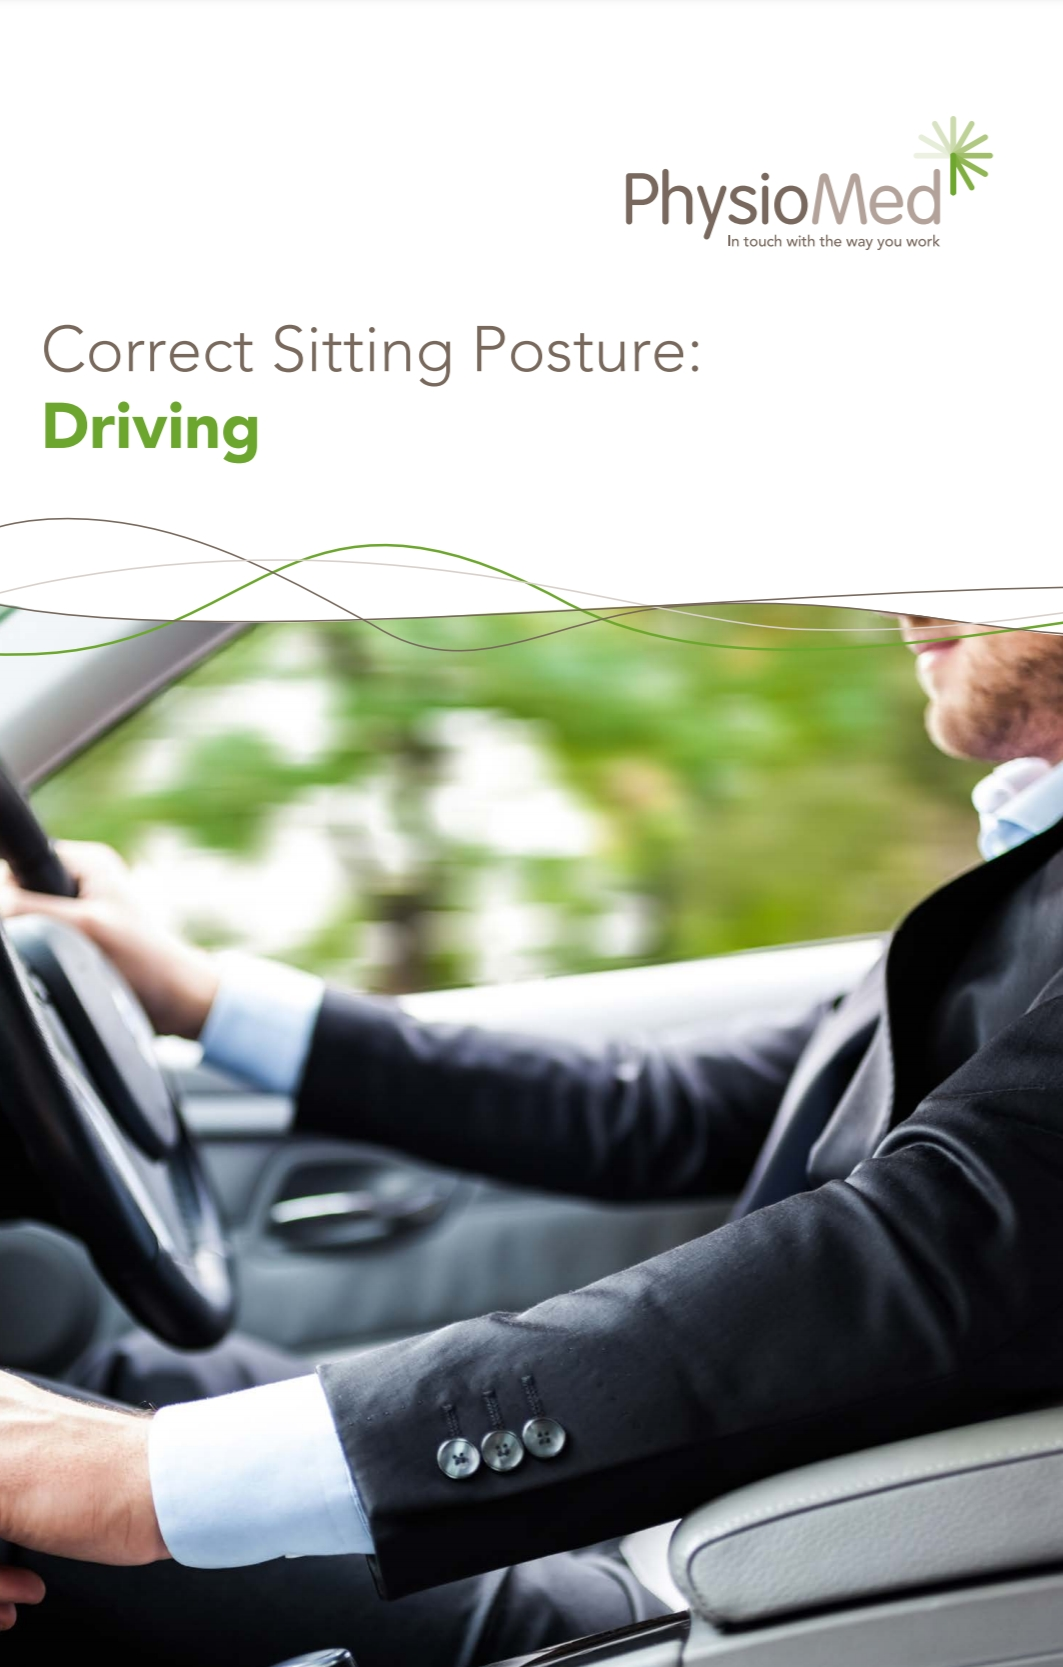 a Physio Med manual : Correct Sitting Posture [ Driving ]